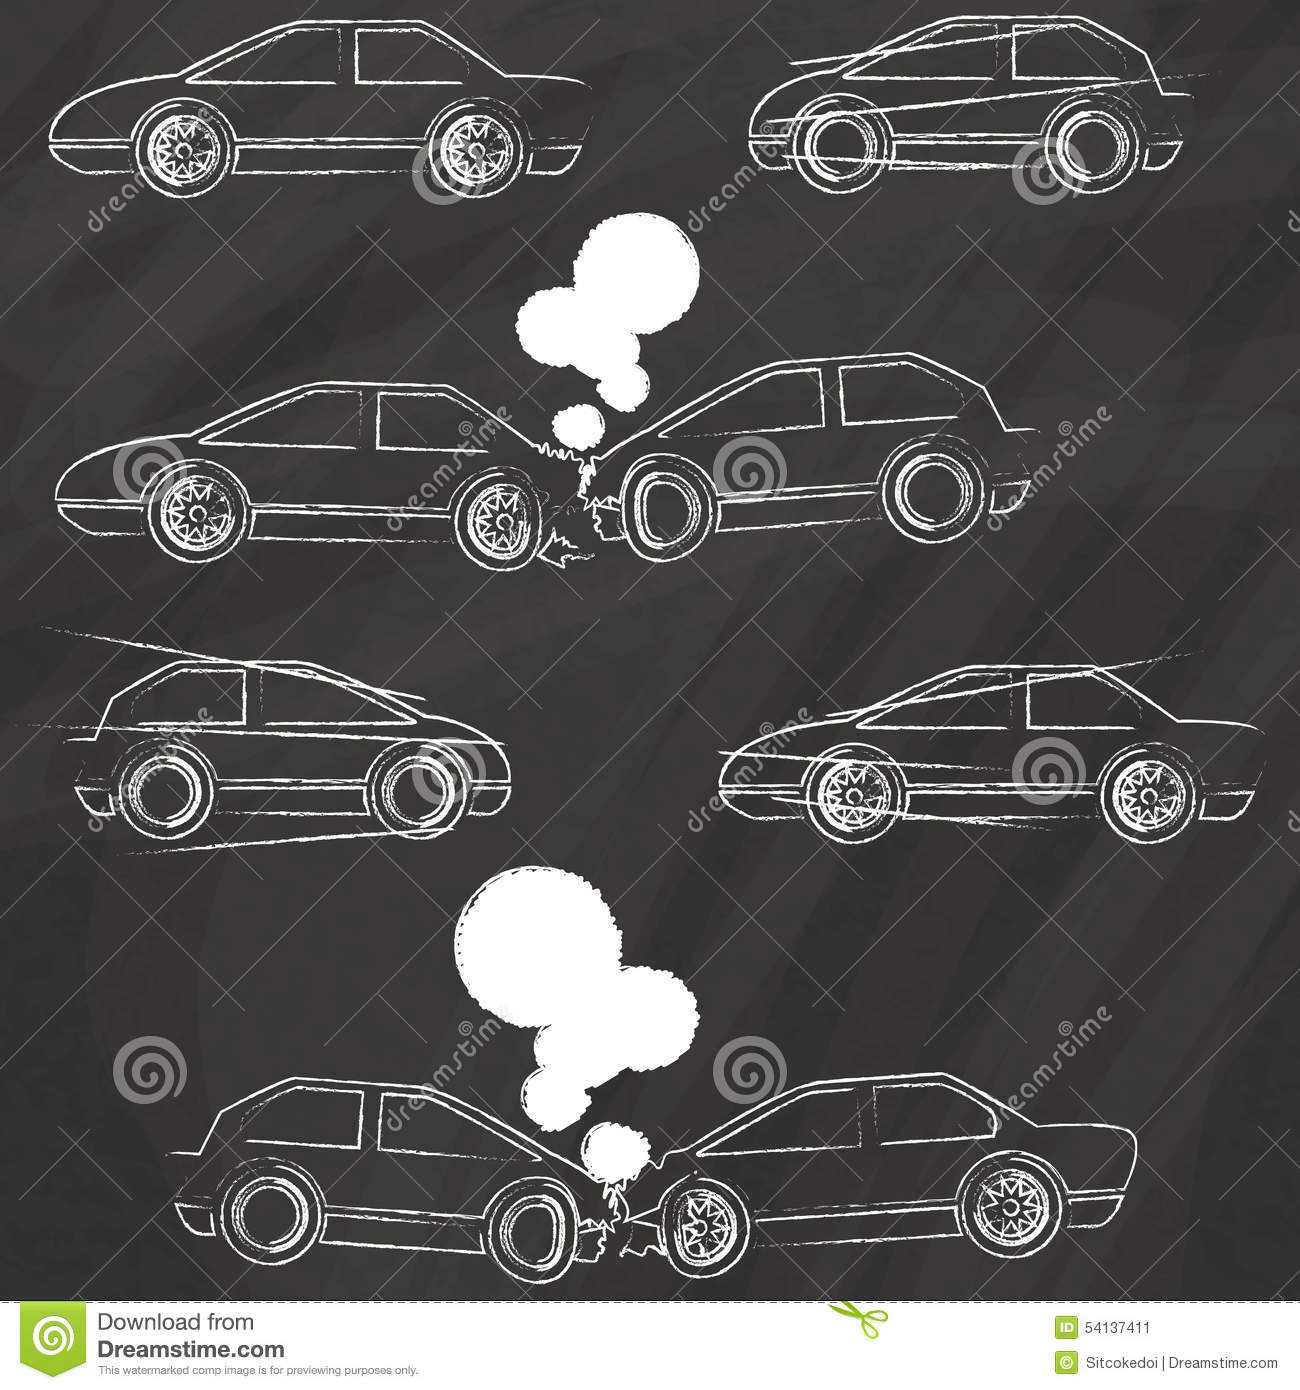 Car crash icons by chalk stock vector. Illustration of fire - 54137411